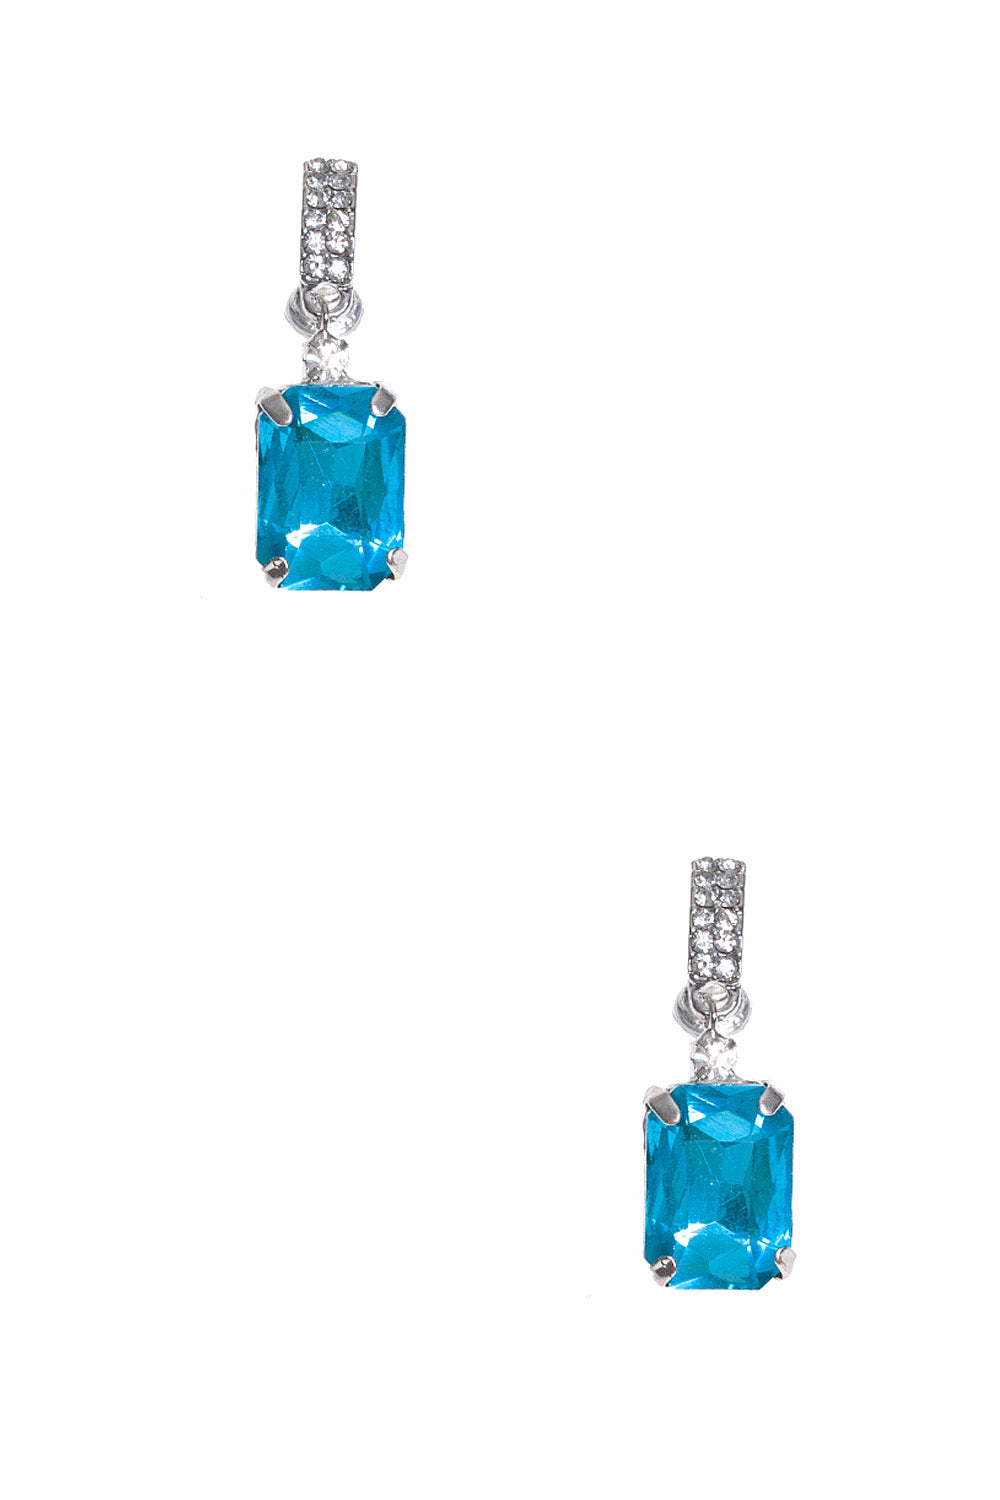 Type 4 Diamond Gem Earrings in Icy Blue